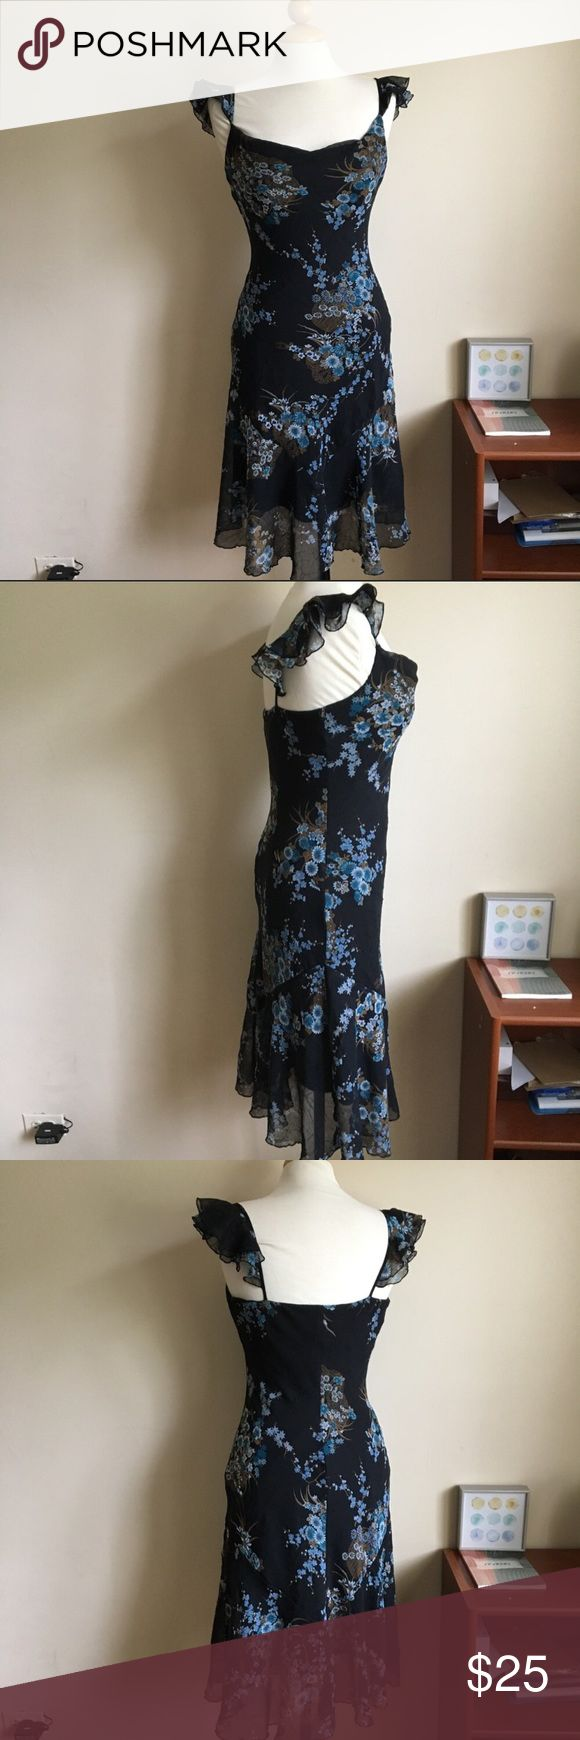 Be Smart Black Floral Spaghetti Strap Maxi Dress Black dress with light blue floral pattern. Ruffling around shoulder straps. Lining has some stretch. Sheath style is very flattering. Excellent used condition. Size tag reads 9/10. Live long and poshper 🖖🏼 Be Smart Dresses Maxi